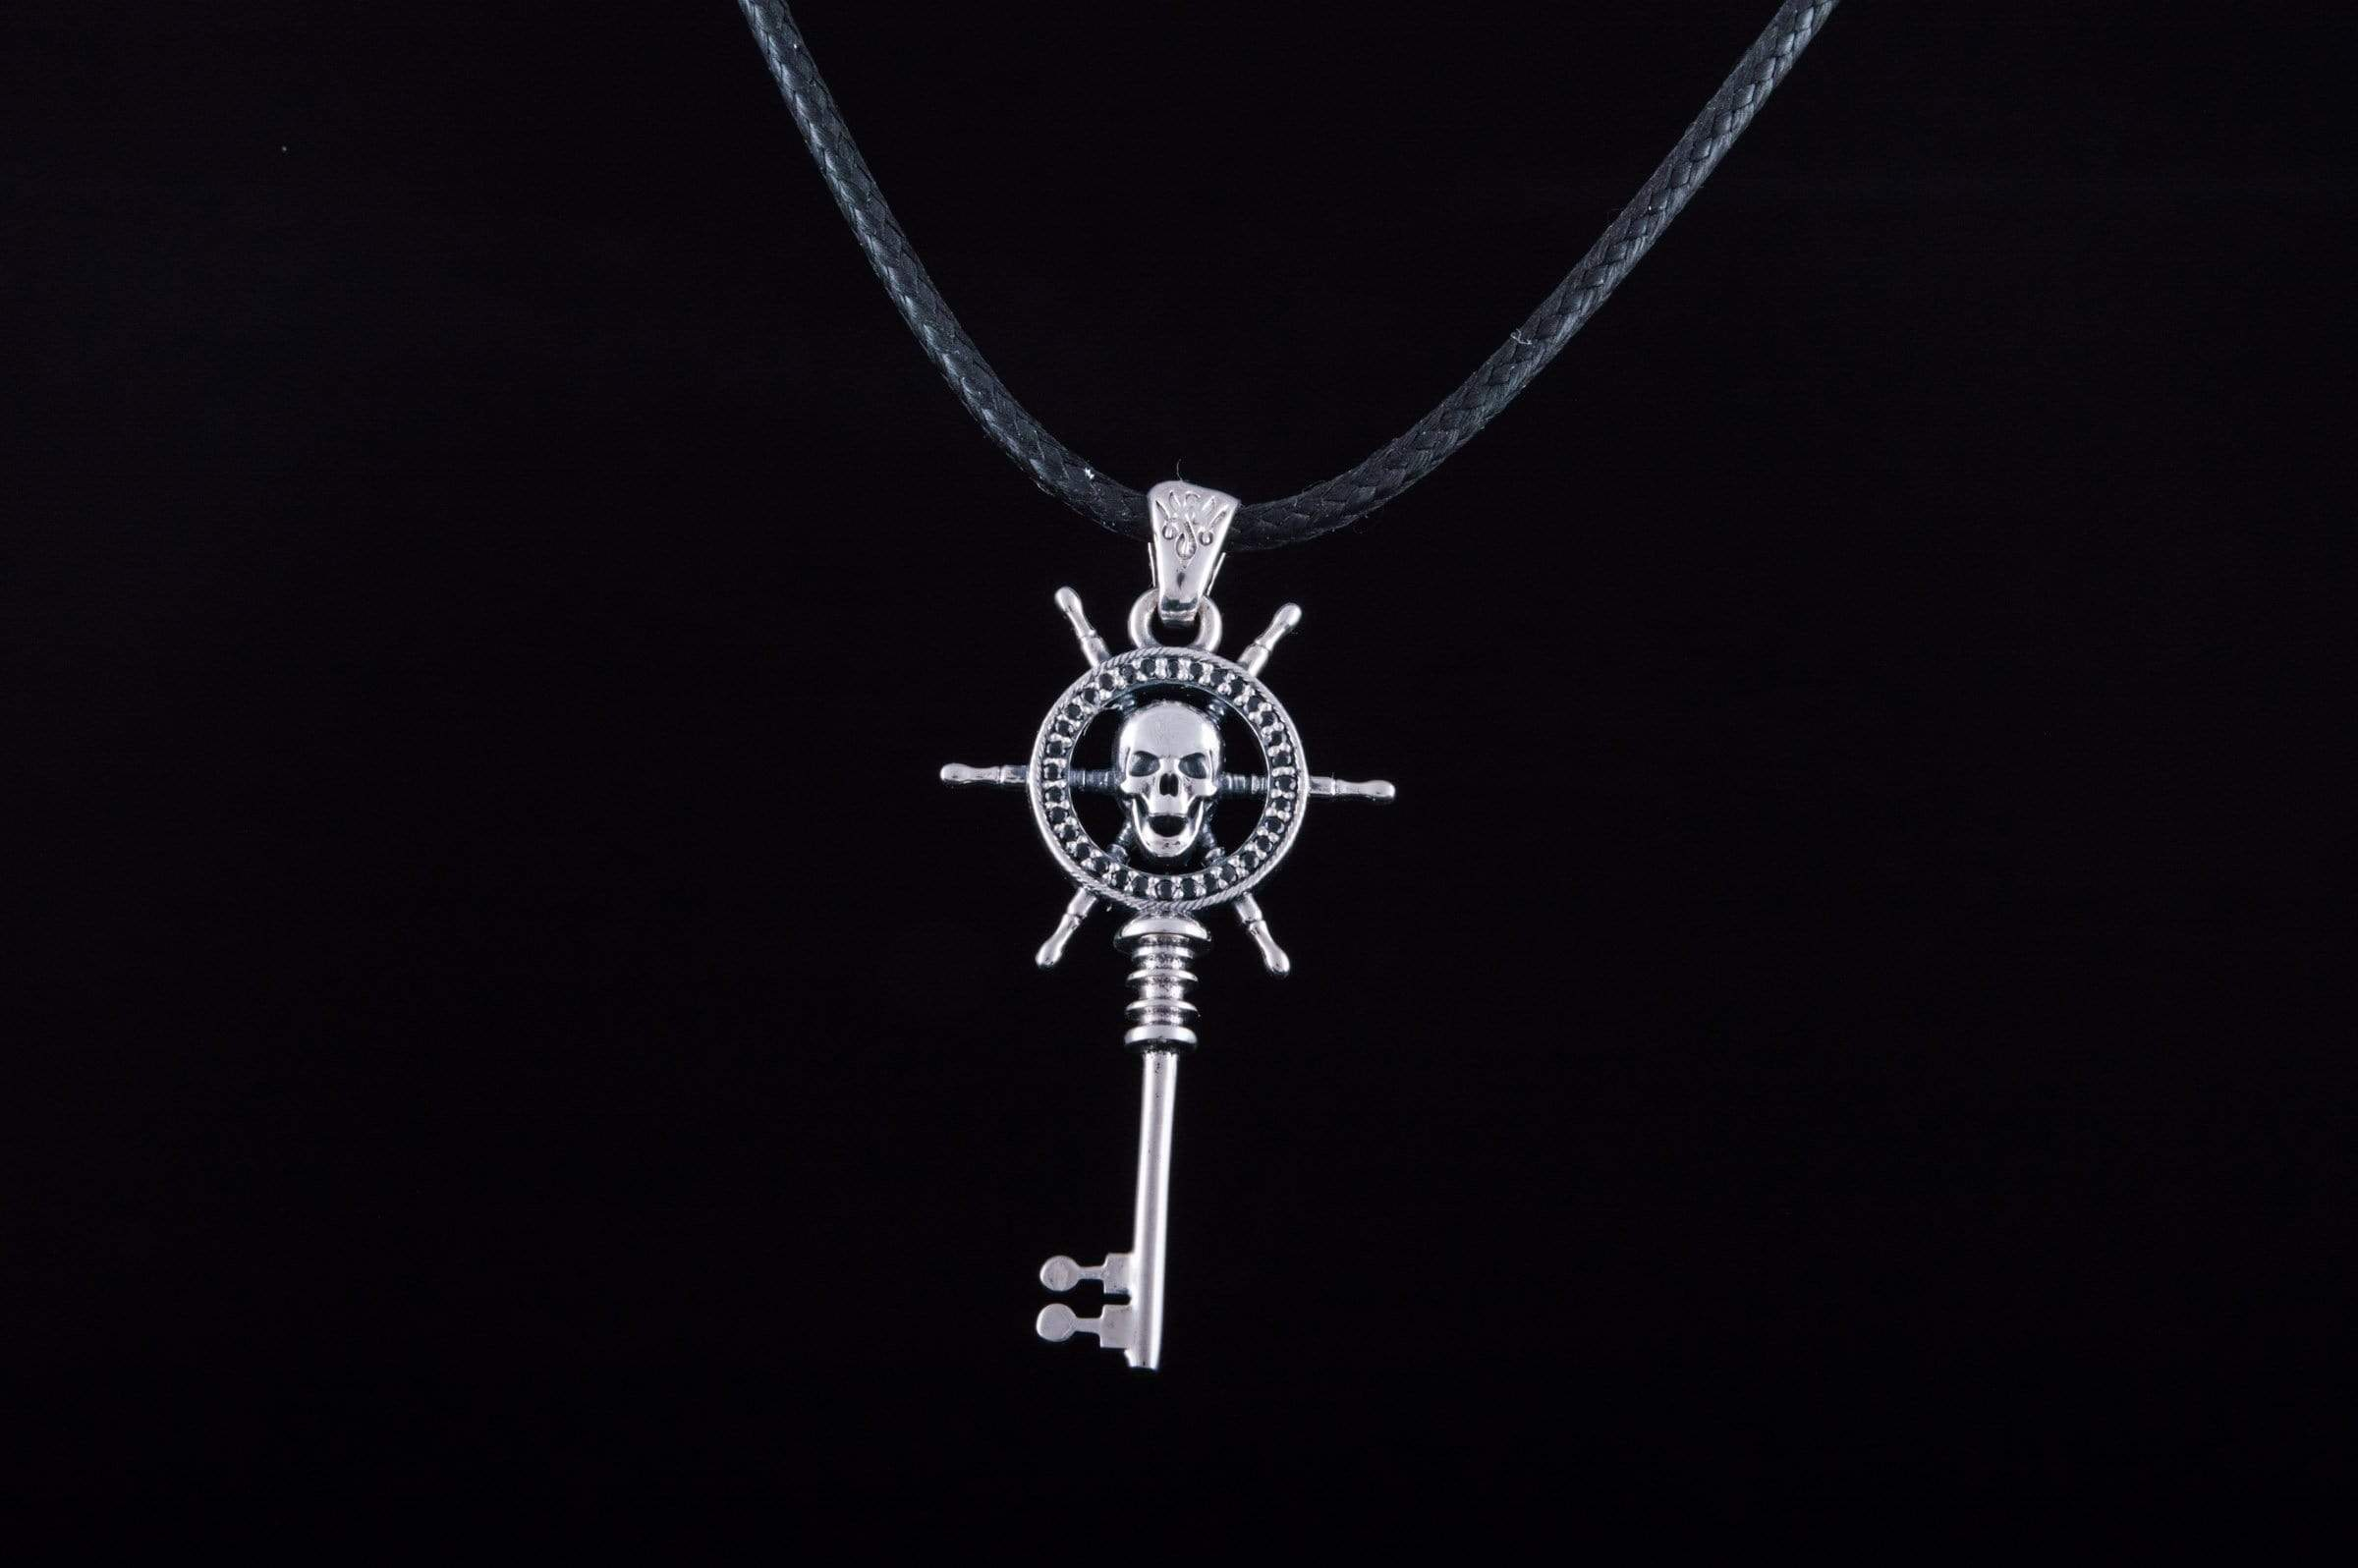 Key with Skull Pendant Sterling Silver Jewelry